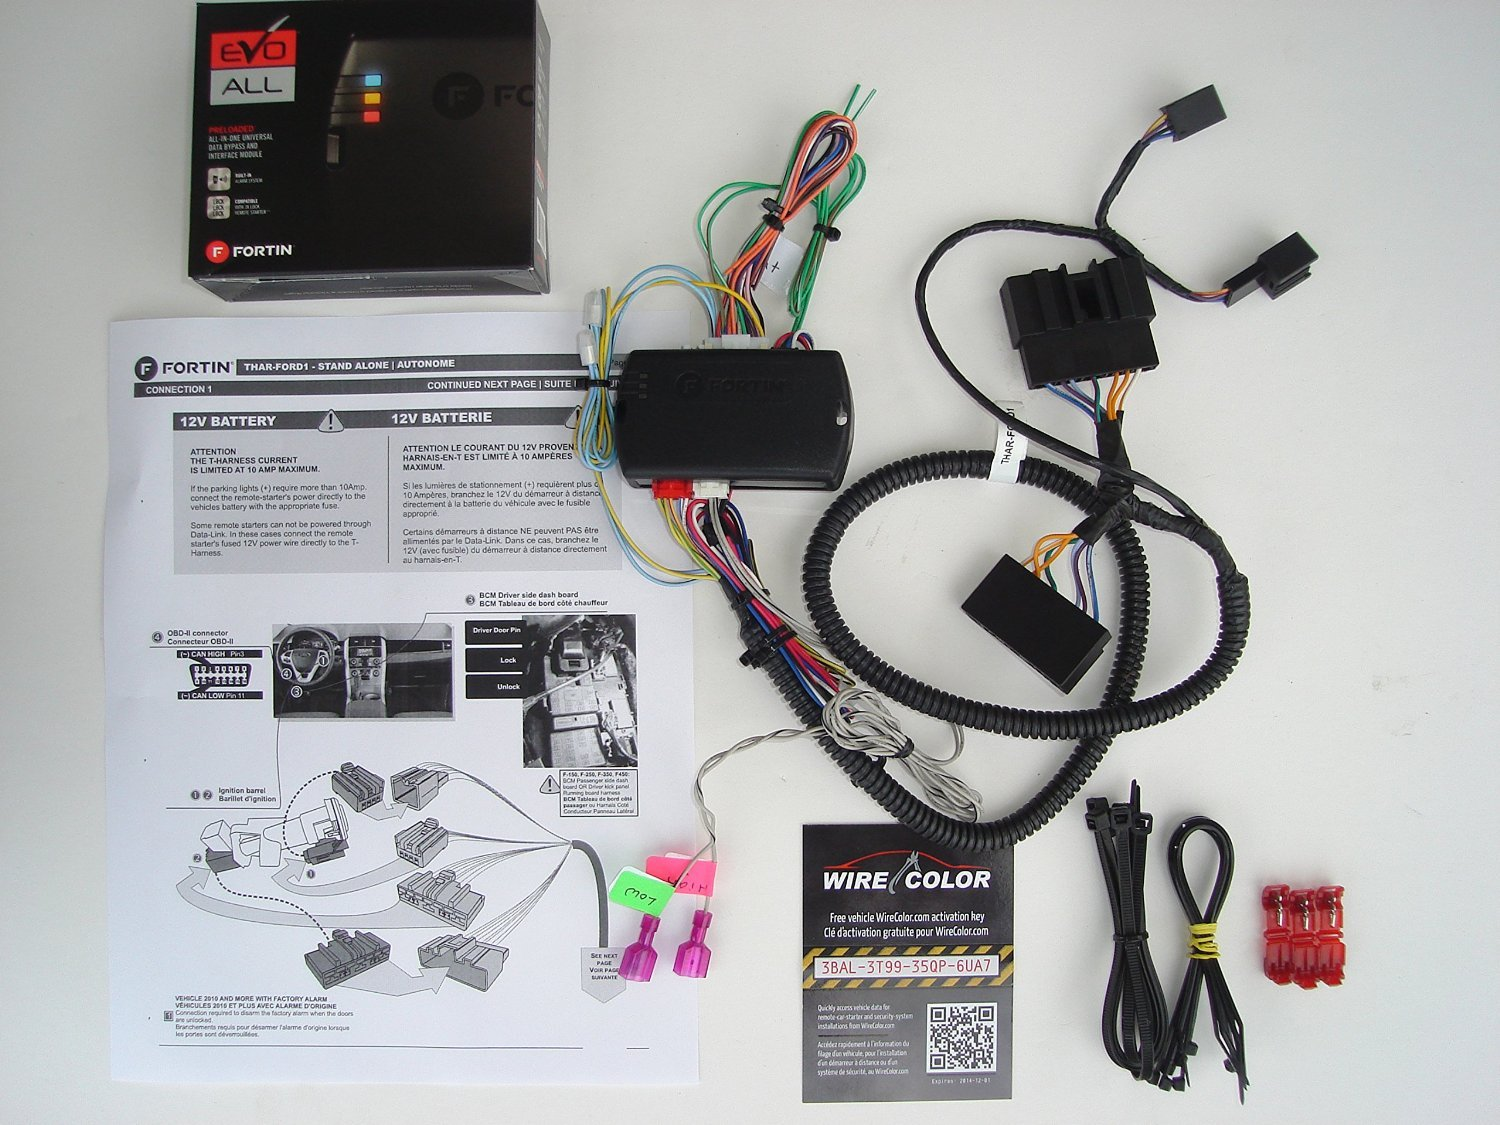 Factory Oem Remote Activated Plug And Play Start Wiring Diagrams In Addition Home Electrical Outlet For Select 2008 2014 Ford Cell Phones Accessories